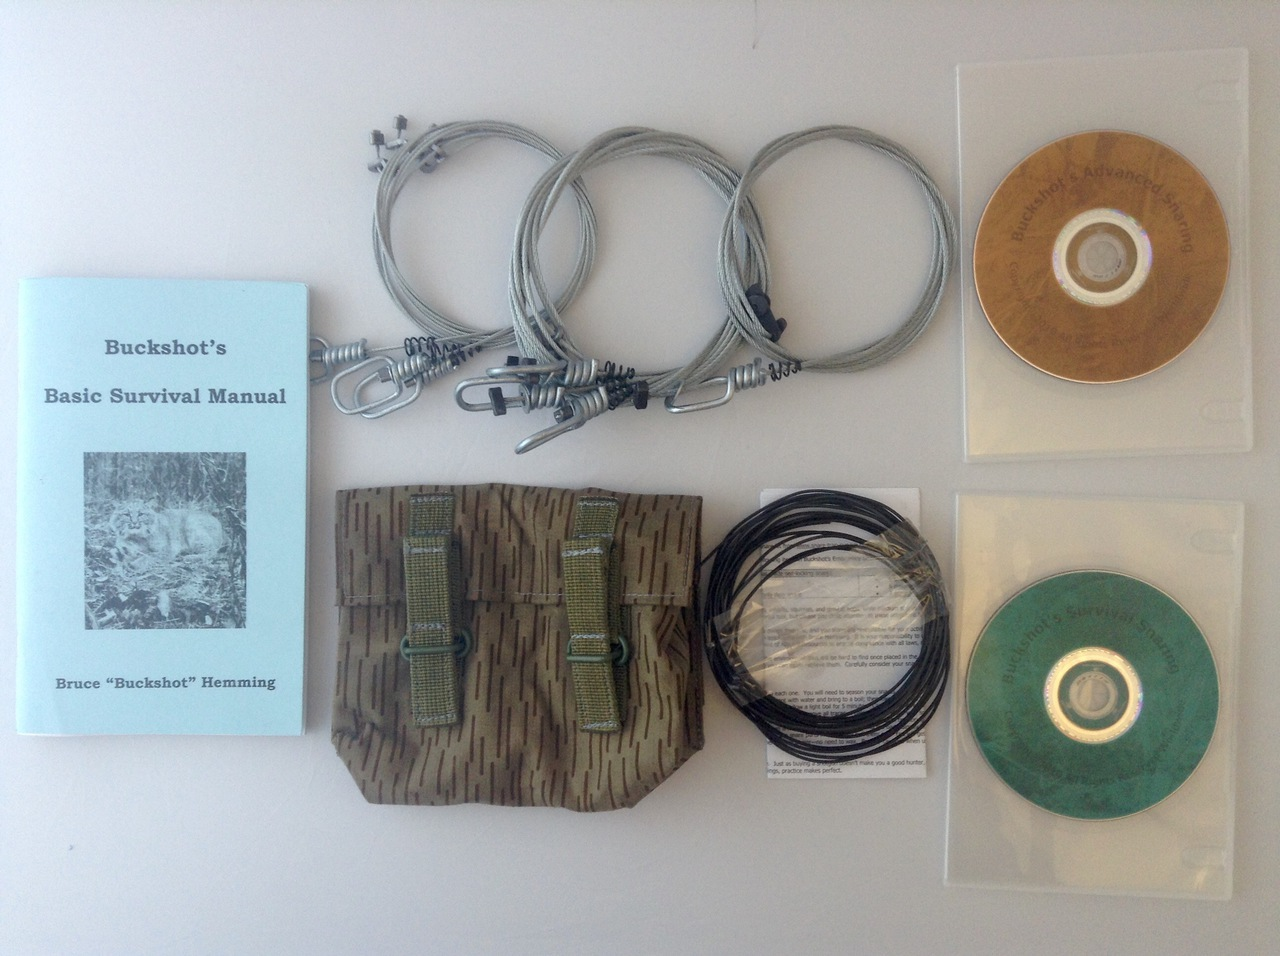 Buckshot's Small Snare Kit, Buckshot's Basic Survival Manual, Survival Snaring DVD & Advanced Survival Snaring DVD